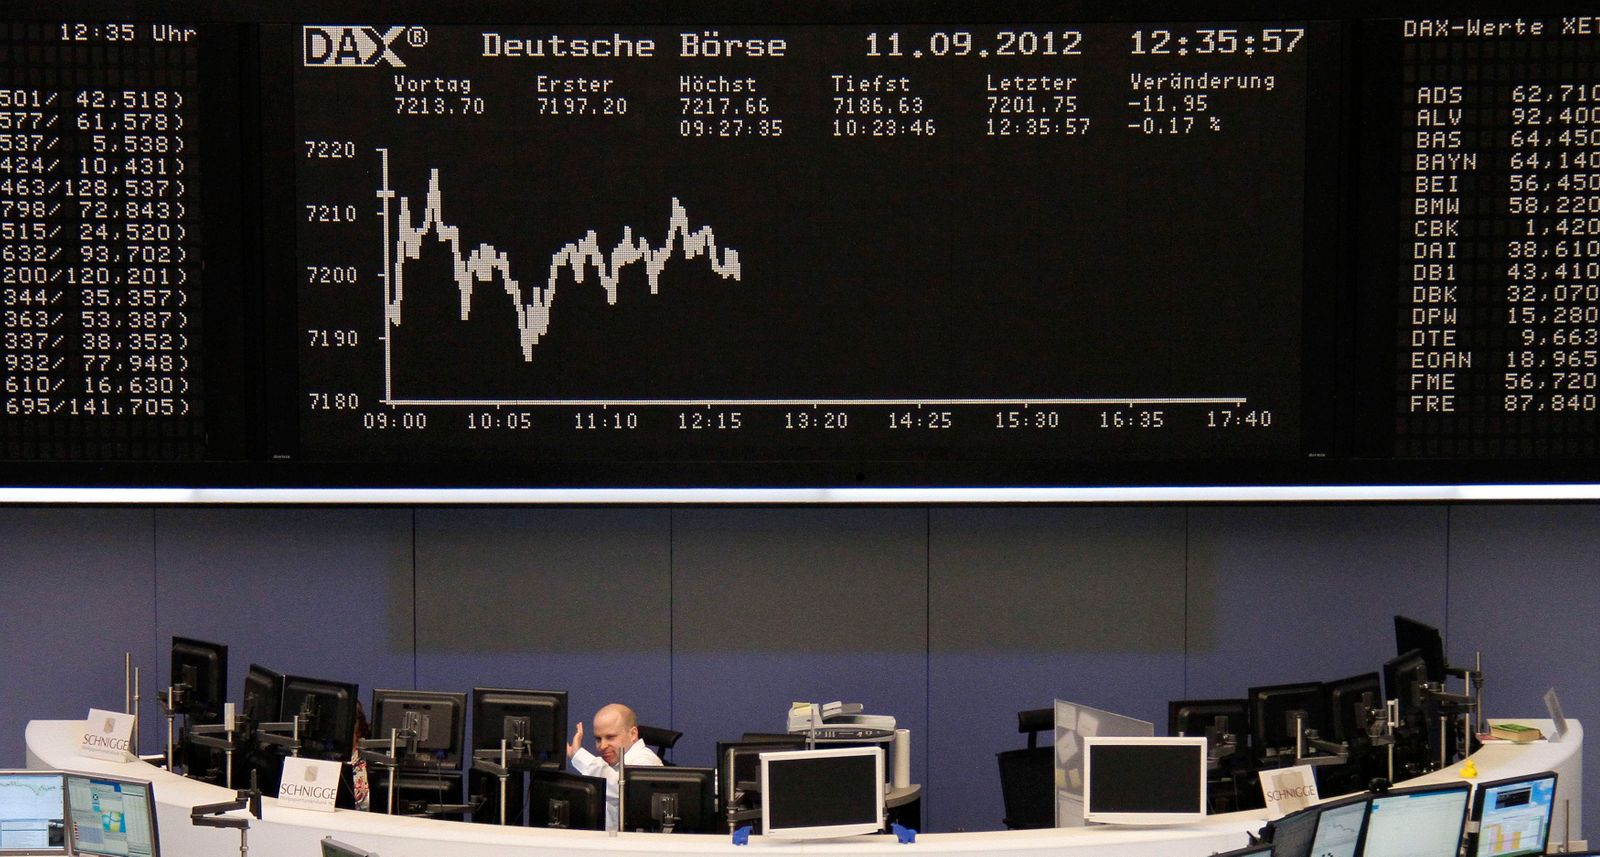 A trader is pictured at his desk beneath the DAX board at the Frankfurt stock exchange